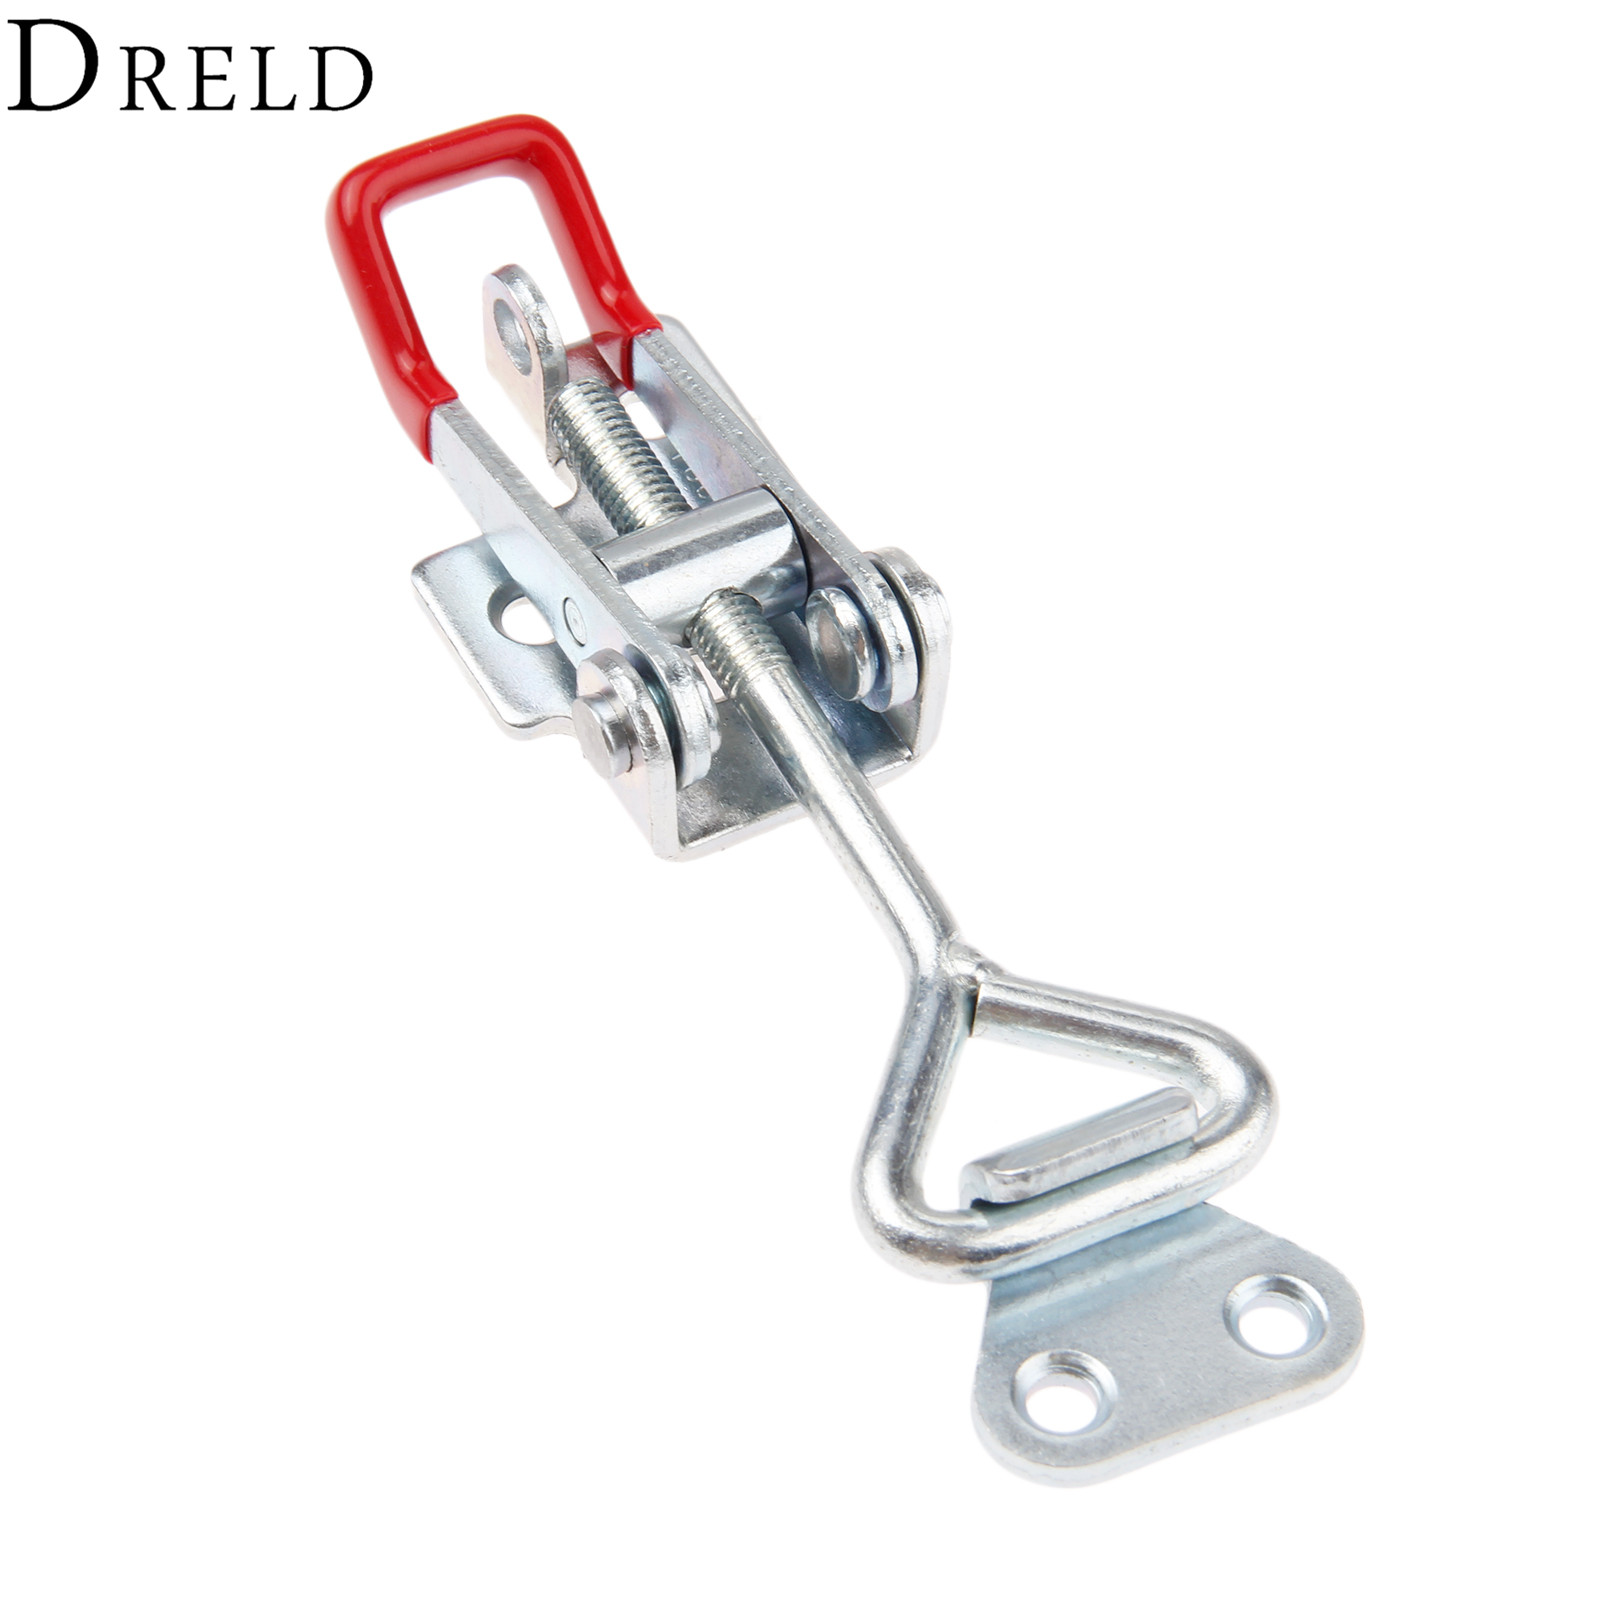 цена на DRELD 1pcs GH-4002 Parighasana Toggle Clamp Clip 200KG/440Lbs Holding Capacity Quick Metal Latch Hand Tool Fixture Clamp